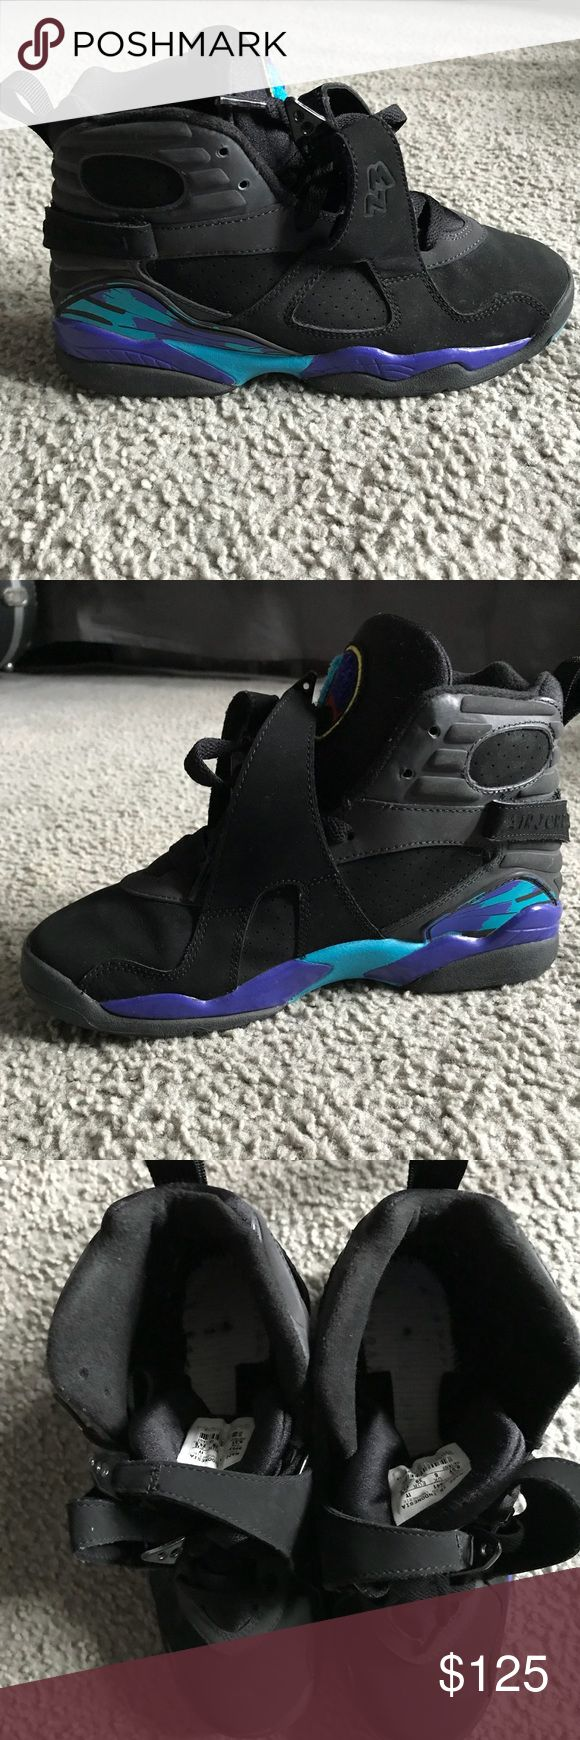 Air Jordan Aqua 8 (2007 release) Worn only a few times back in 2007.. they have been stored away for years. They are in amazing condition only problem is they are missing the insole and the original box. Air Jordan Shoes Sneakers